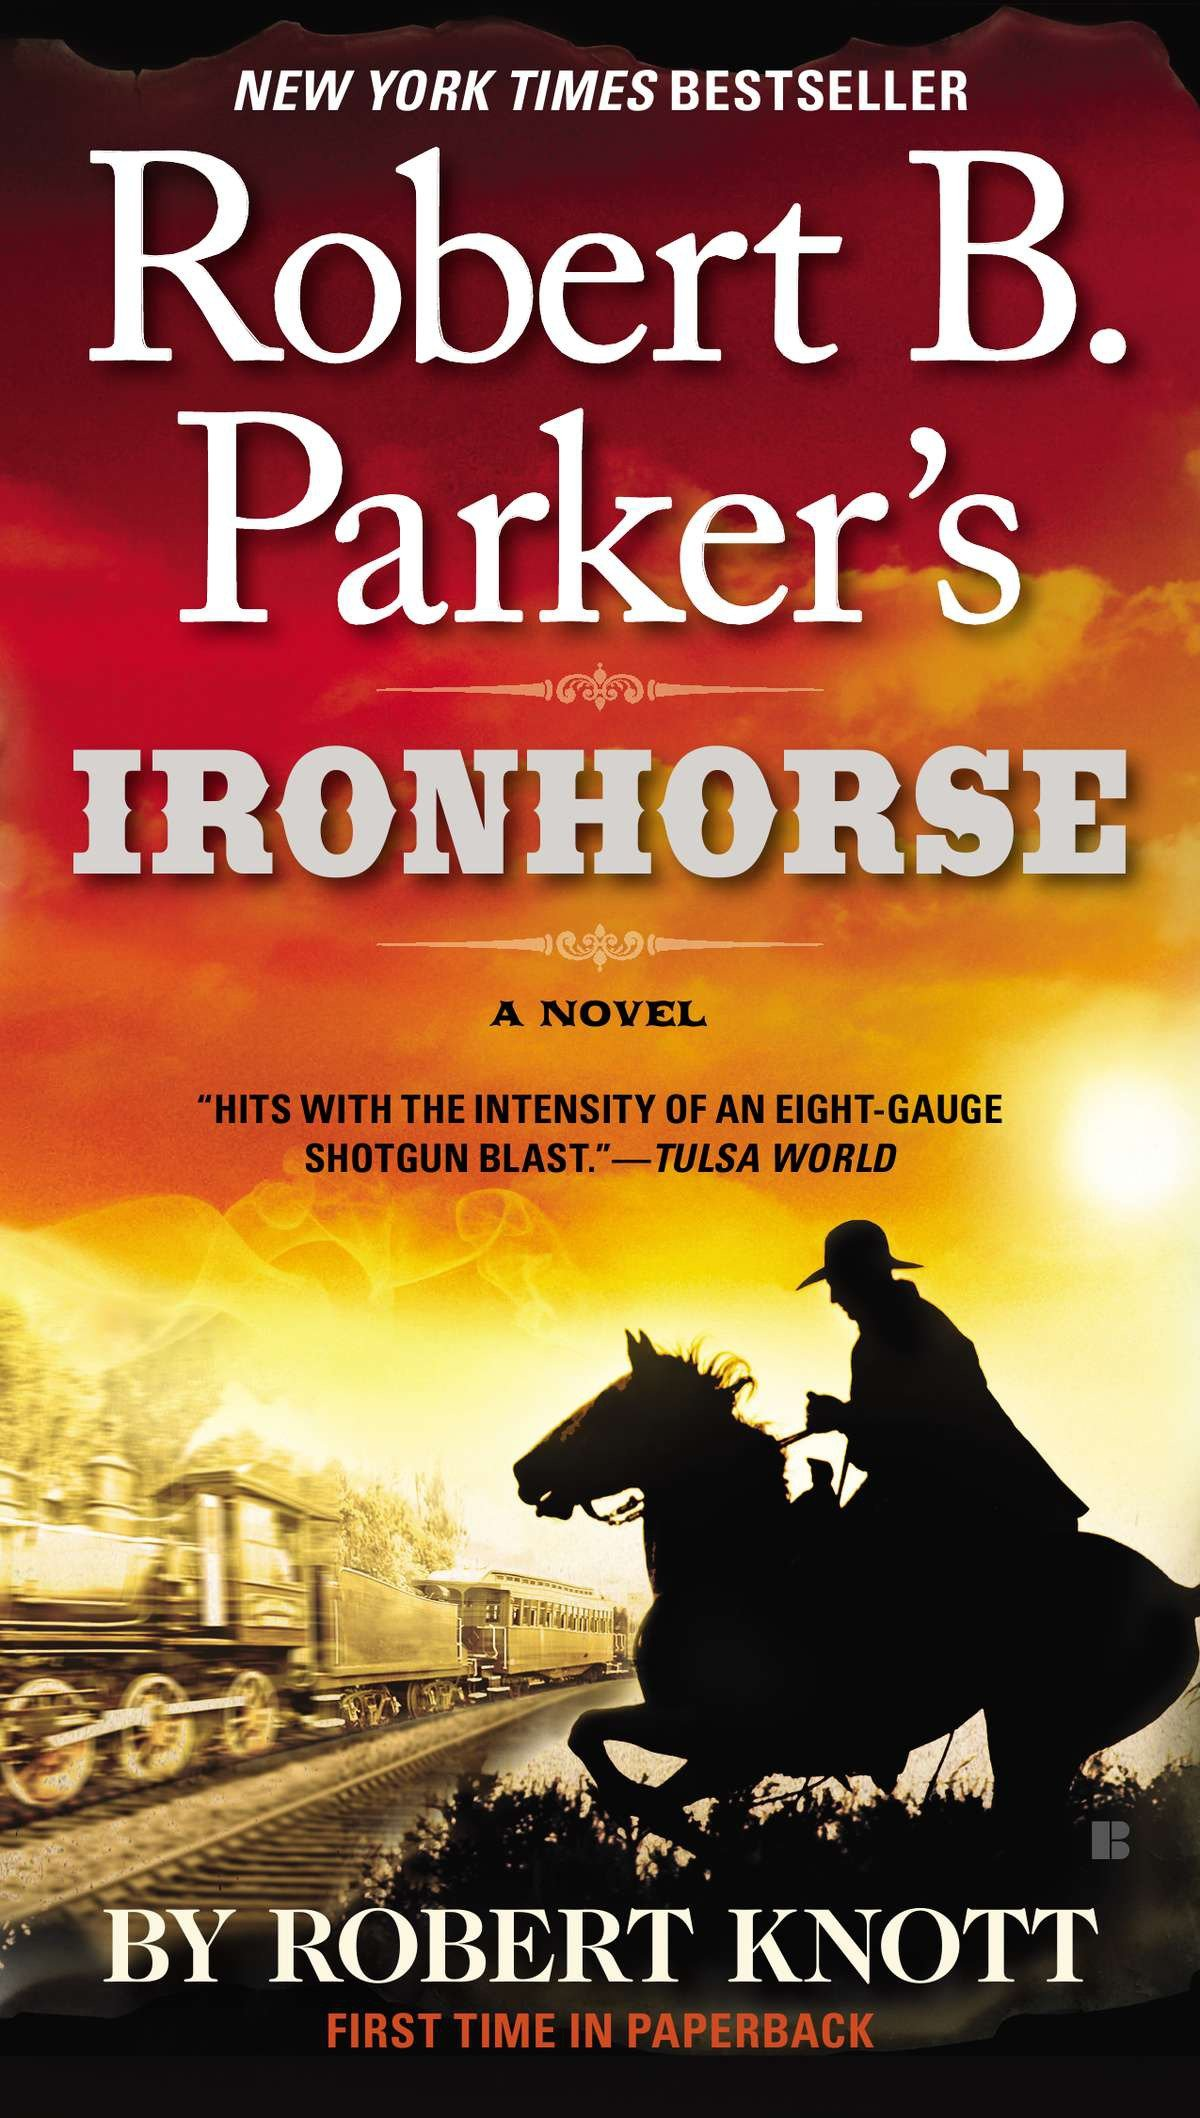 Robert B. Parker's Ironhorse [electronic resource]